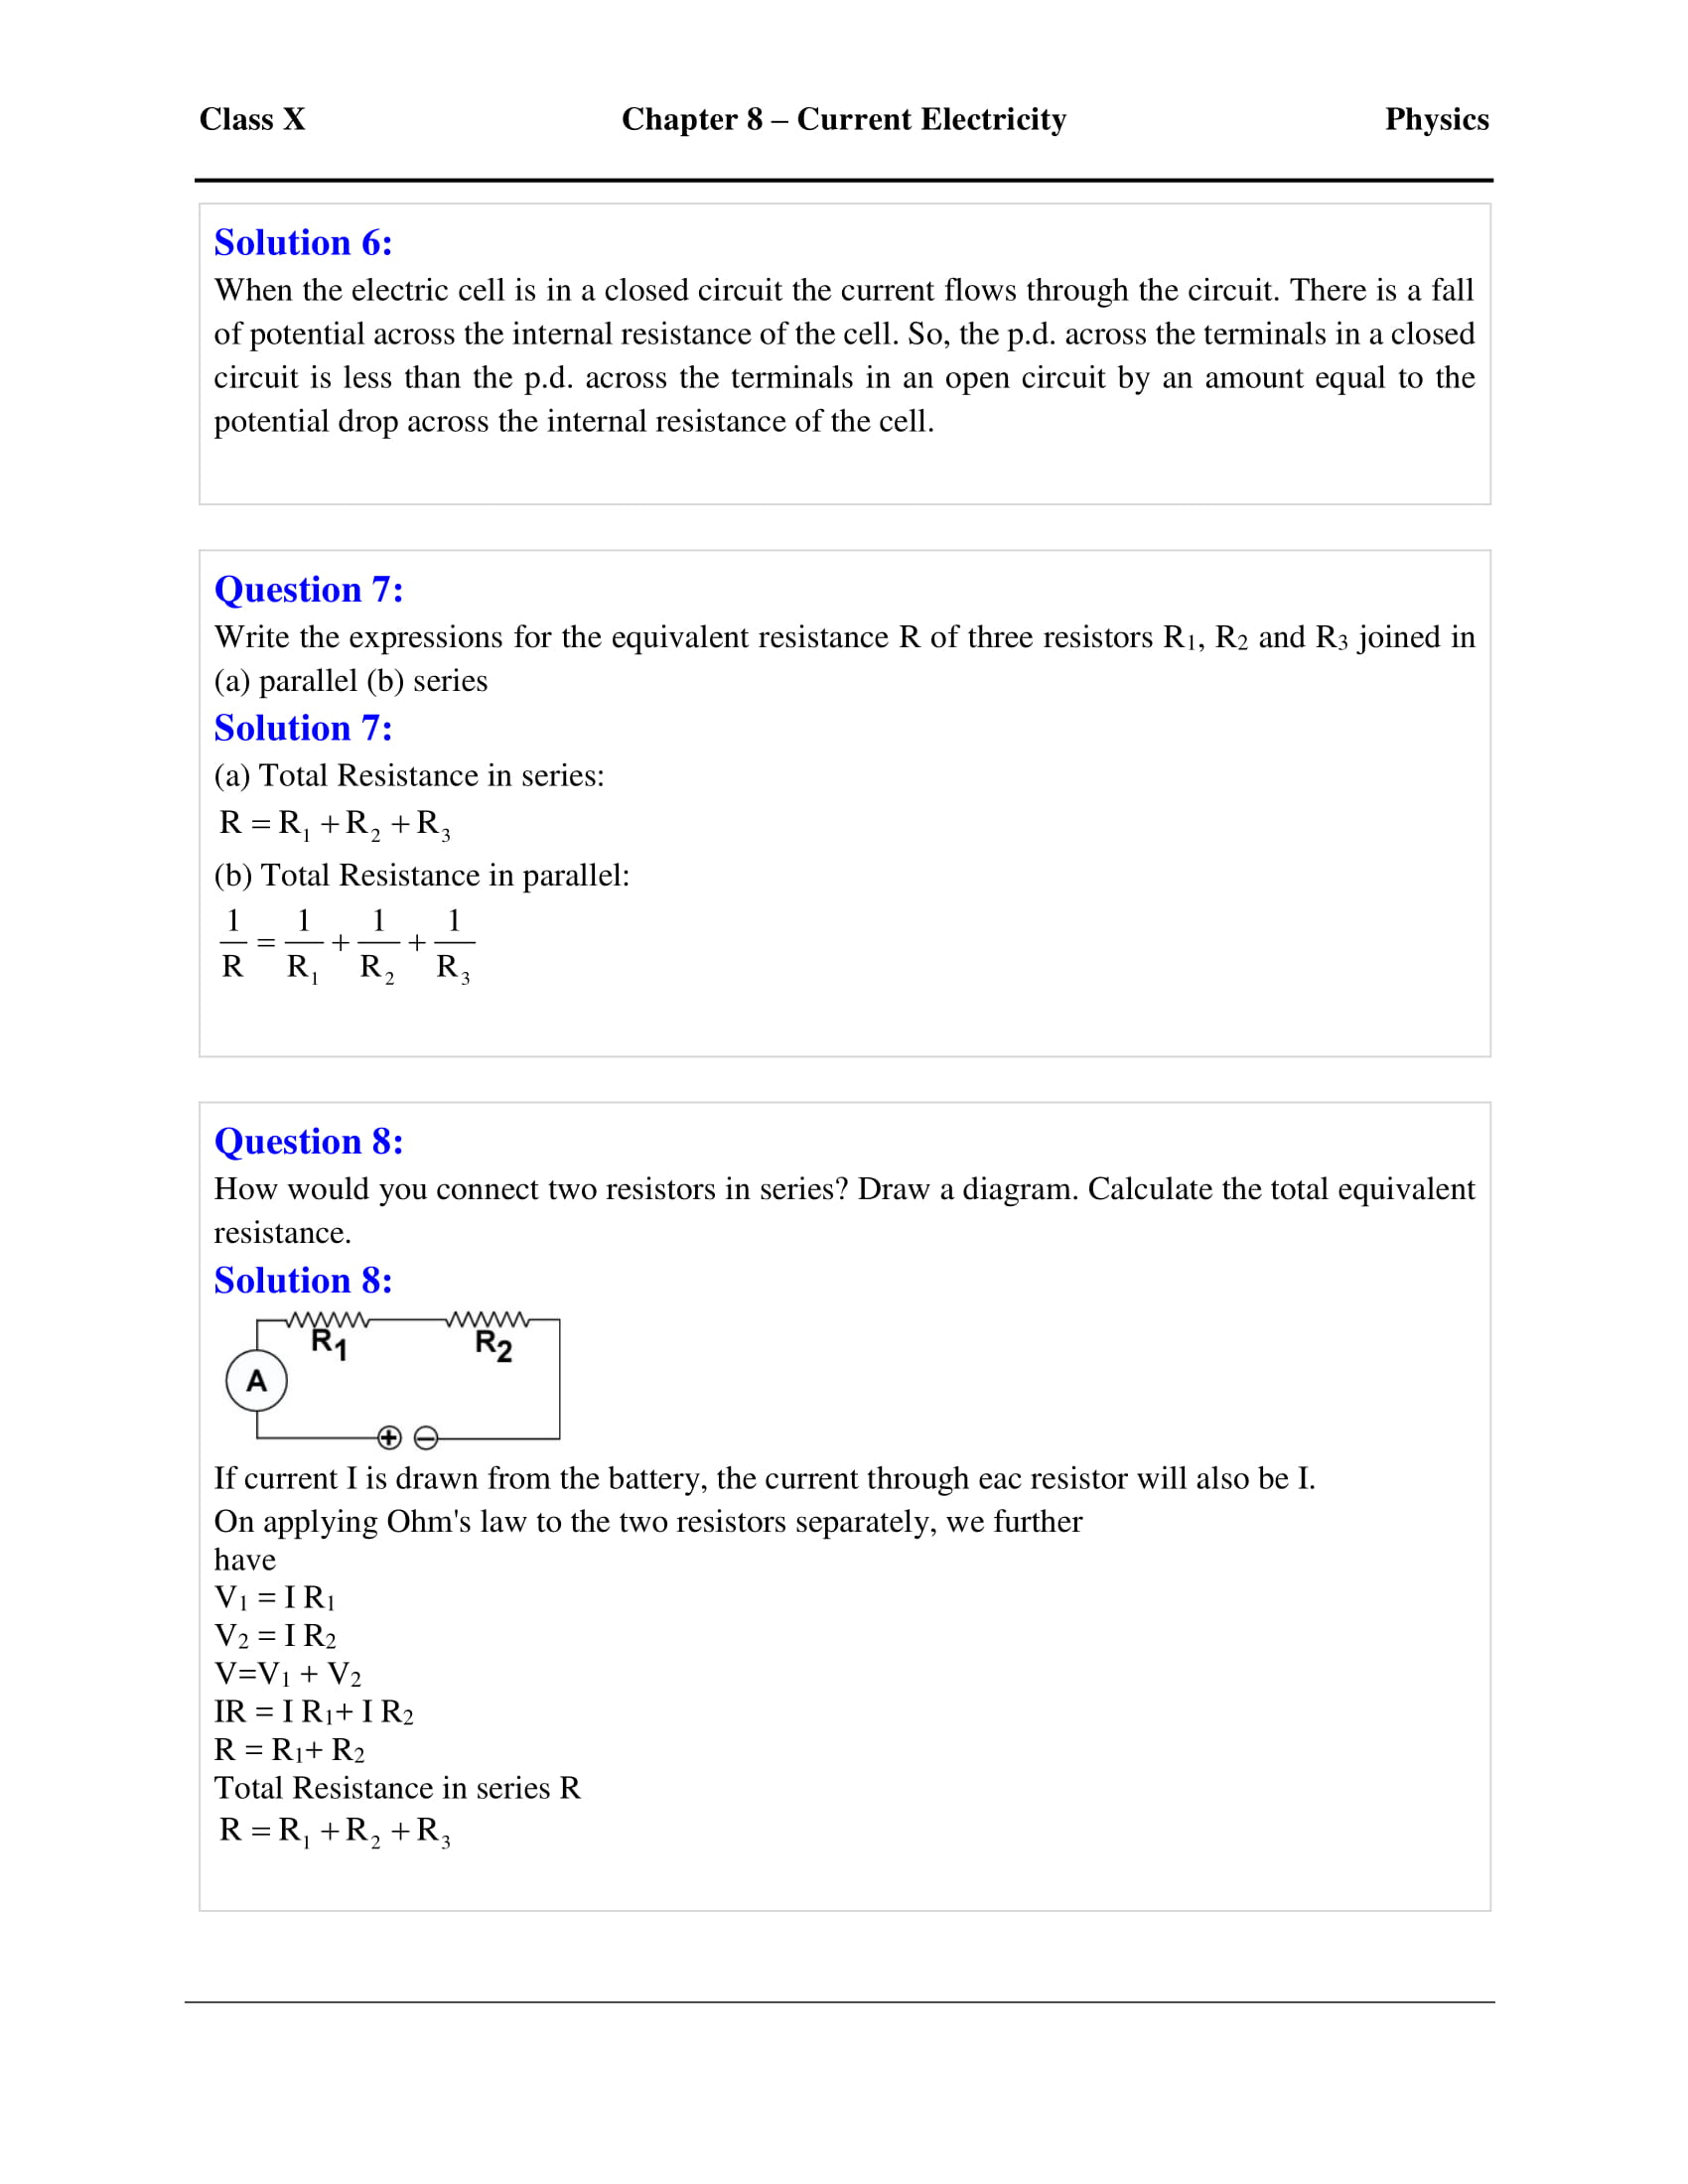 icse-selina-physics-solutions-class-10-chapter-8-current-electricity-19